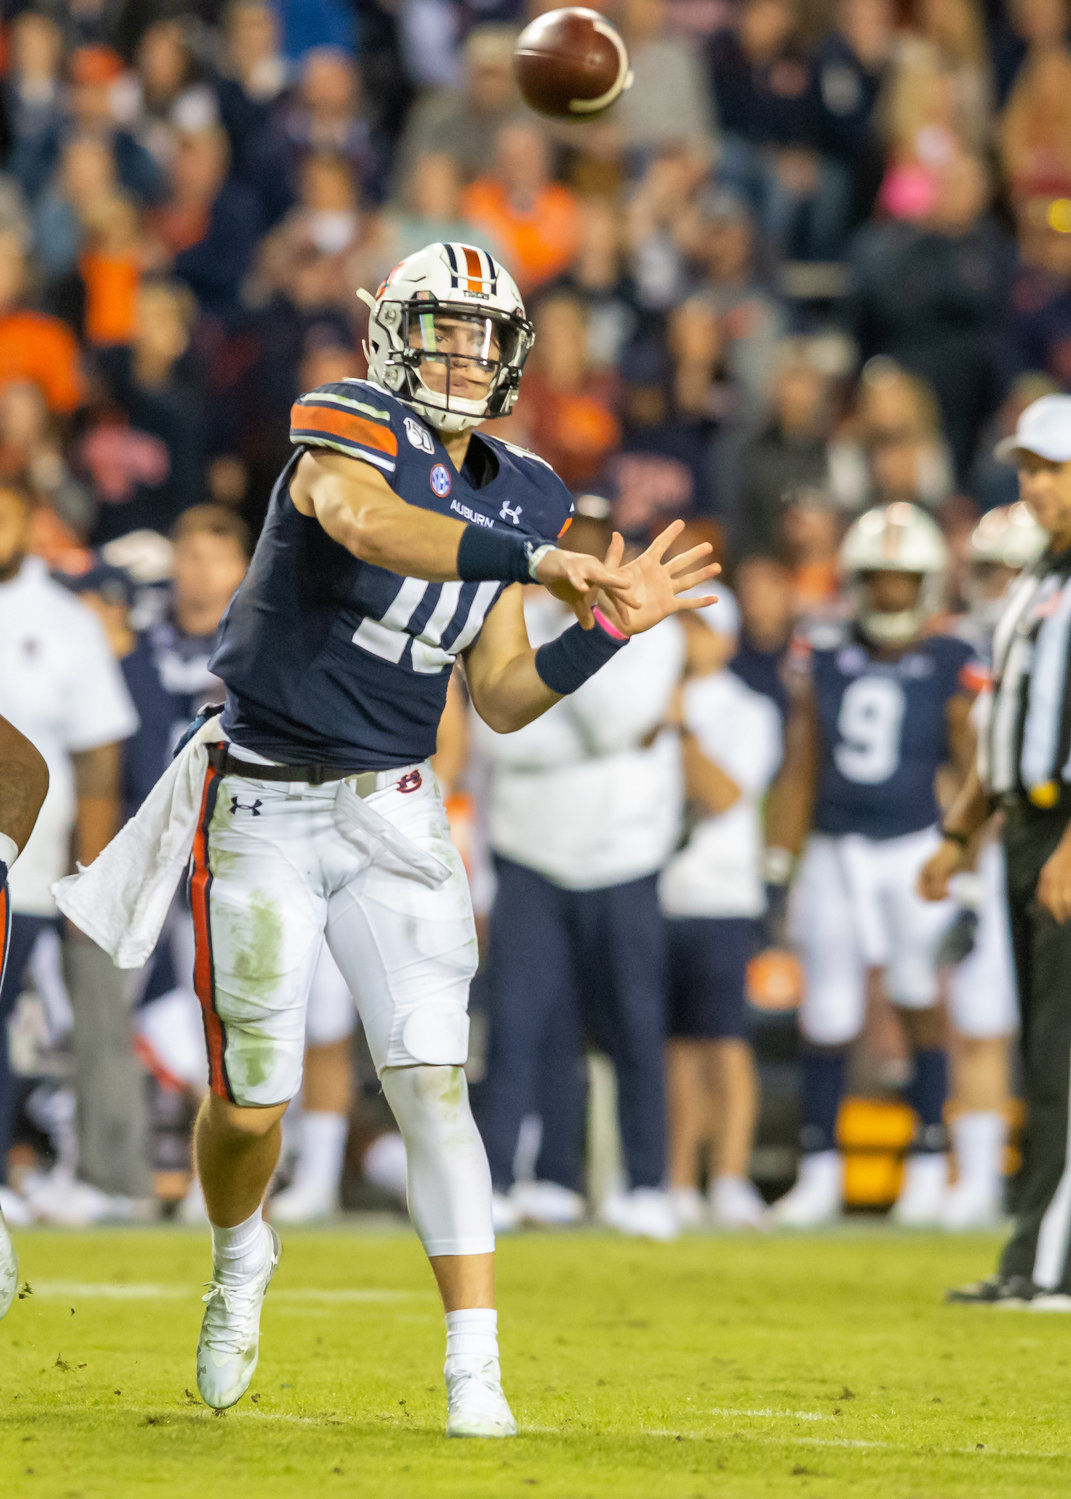 Auburn Tigers quarterback Bo Nix (10) throws  during the second half of Saturday's game, at Jordan-Hare Stadium in Auburn,, AL. Daily Mountain Eagle -  Jeff Johnsey